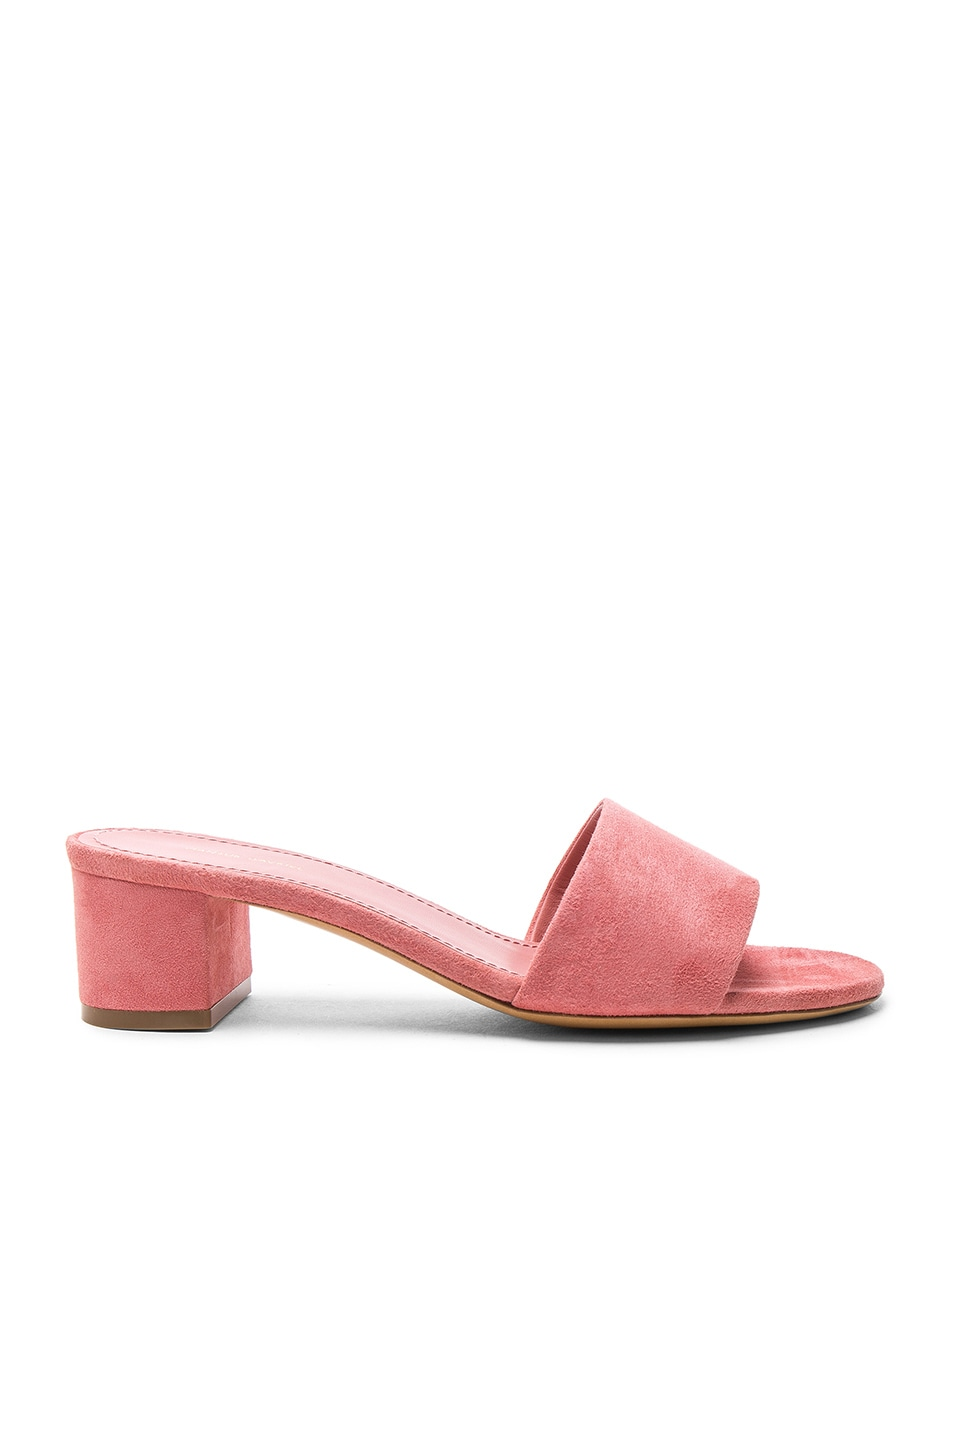 Image 1 of Mansur Gavriel Suede Single Strap Heels in Blush Suede